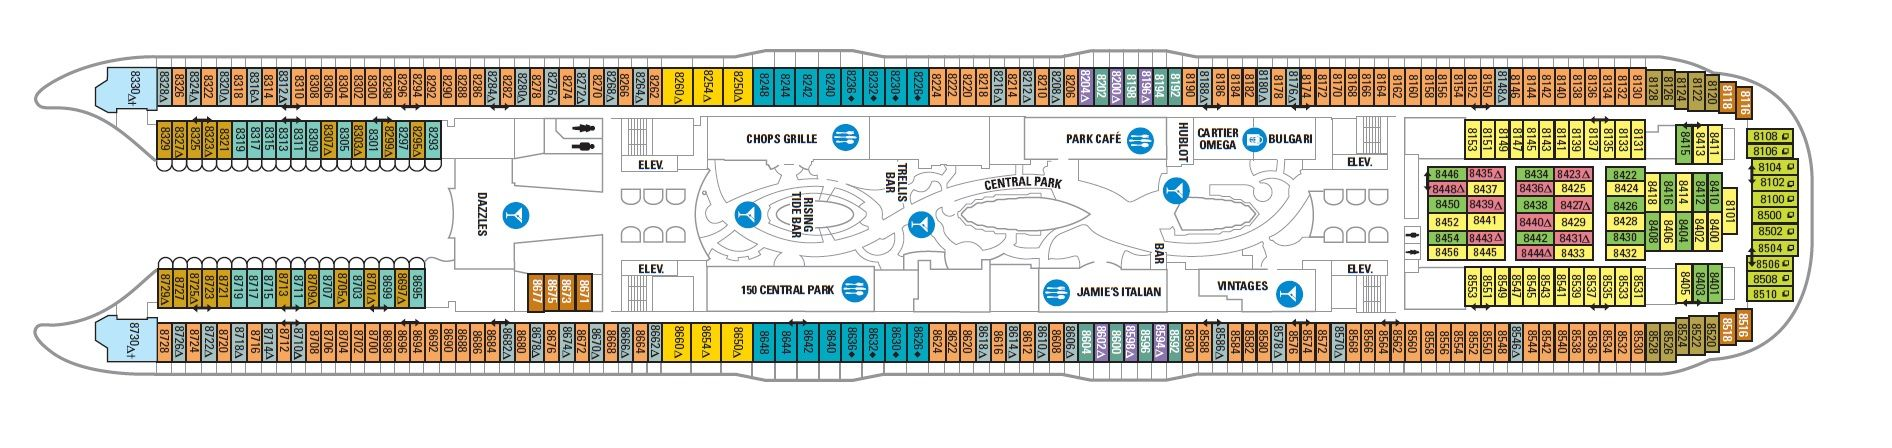 Harmony of the seas deck 8 updated on deck plans pinterest harmony of the seas deck 8 updated on deck plans baanklon Gallery